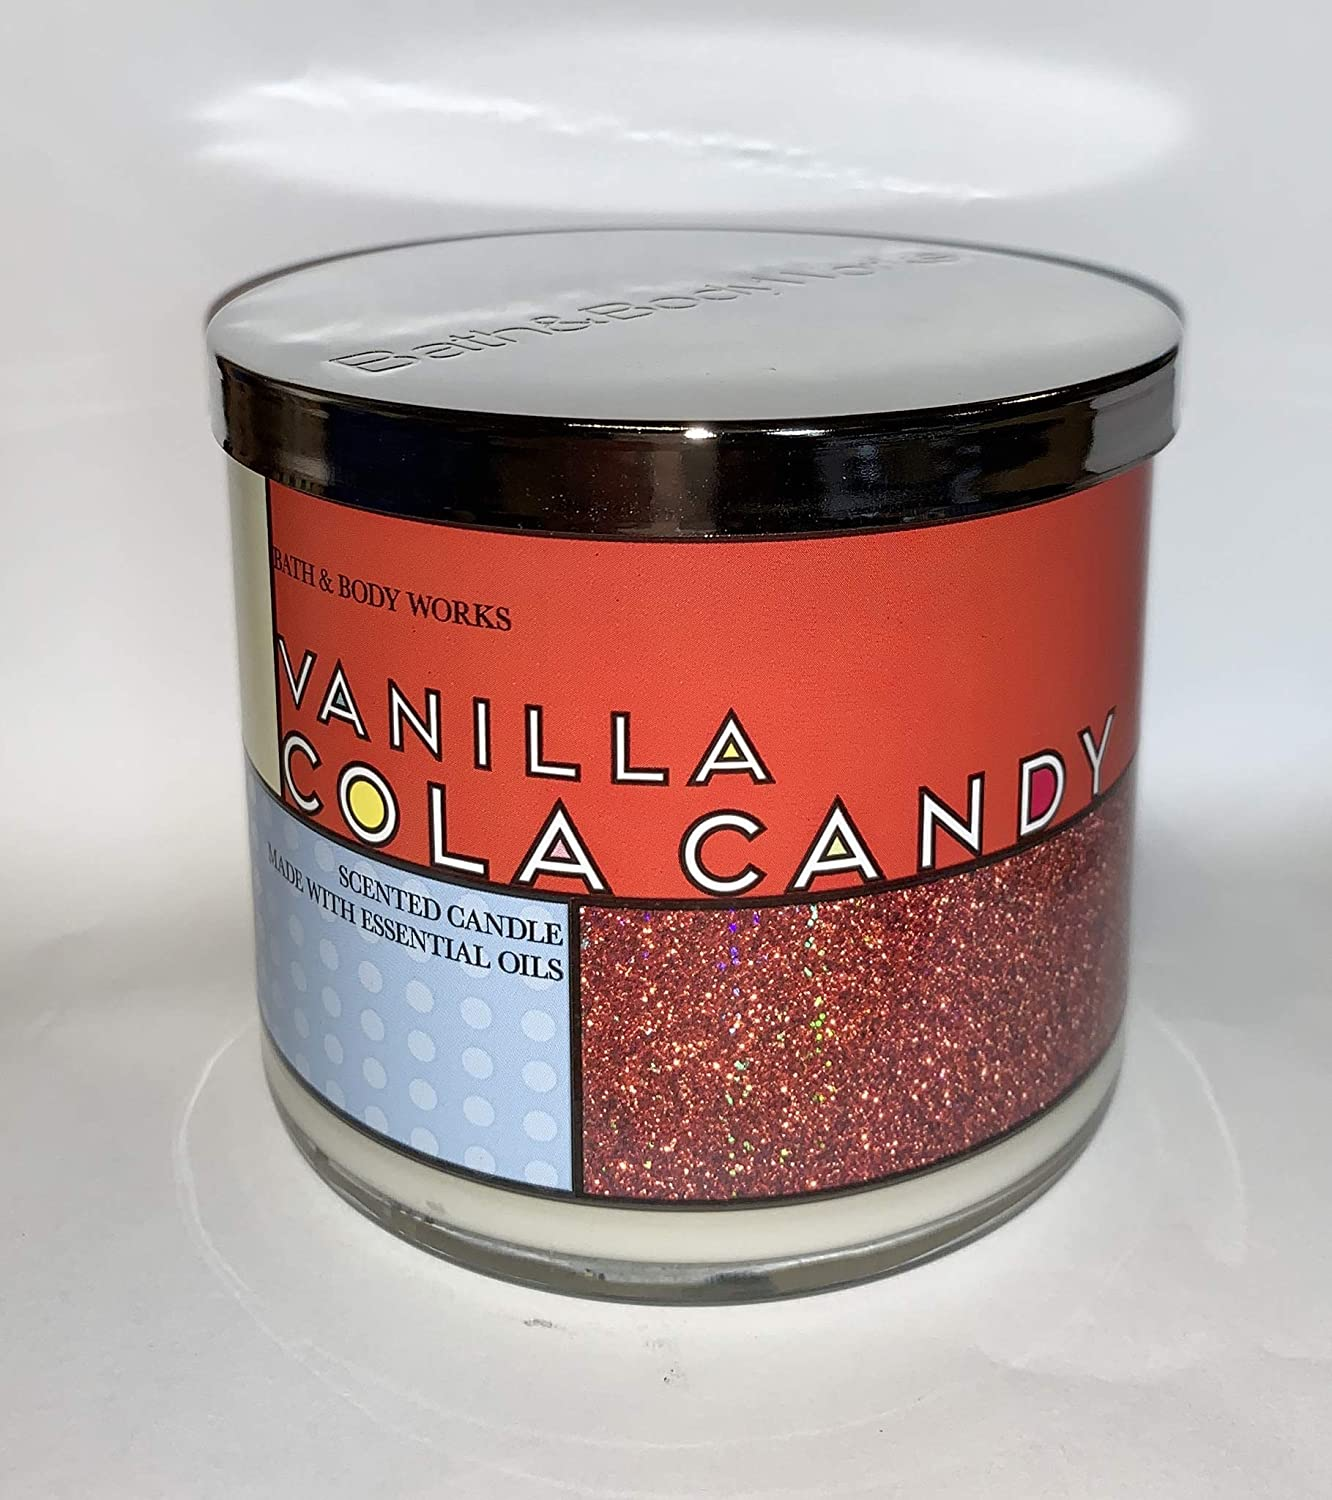 Bath and Body Works Vanilla Cola Candy Candle - Large 14.5 Ounce 3-Wick Candy - Discontinued Soda Scent Limited Edition